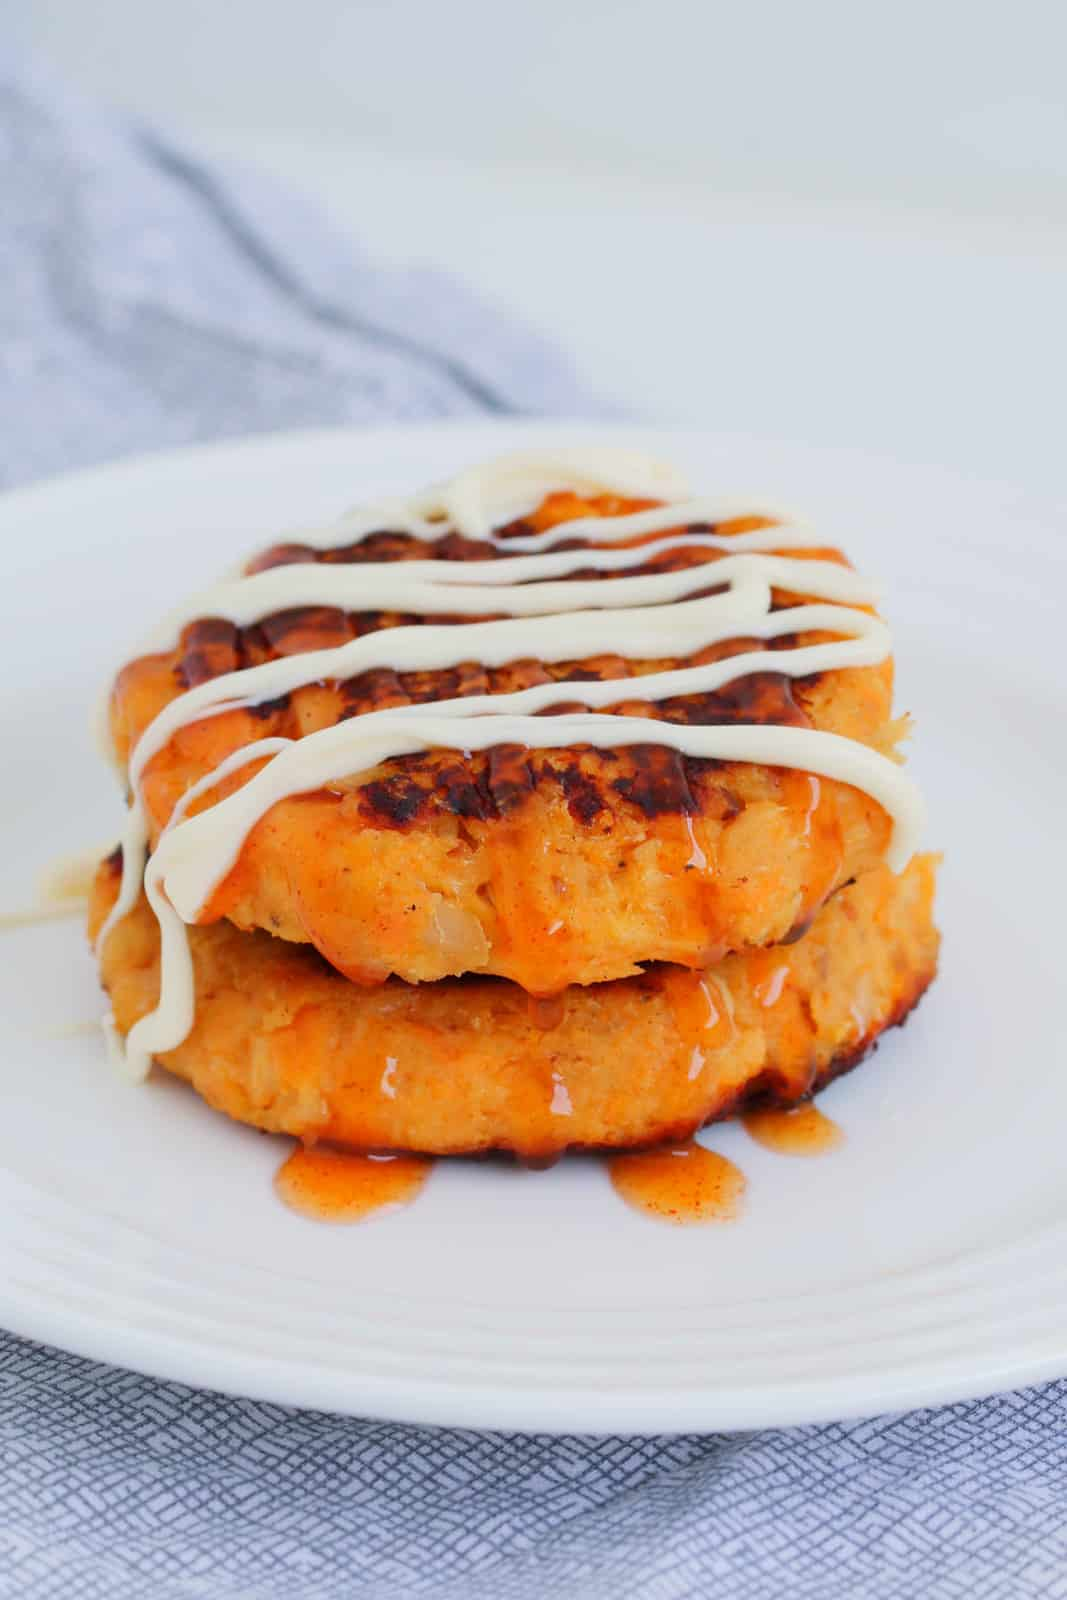 Two savoury tuna patties with sweet chilli sauce and kewpie mayonaise on top.